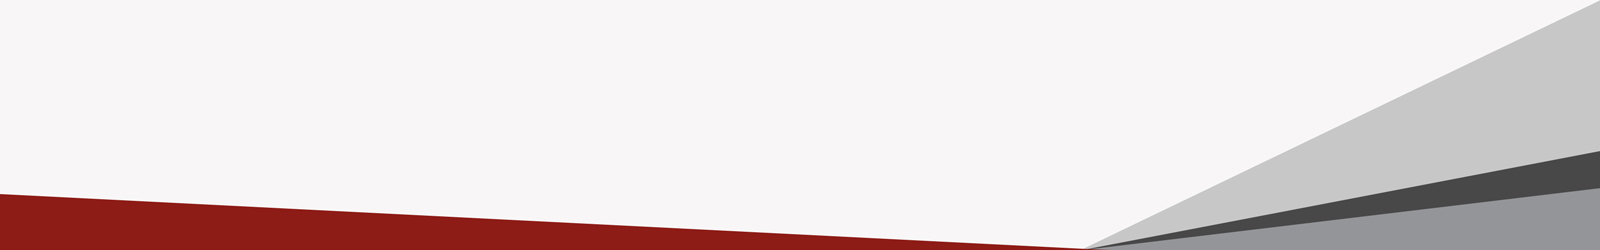 Red and grey banner